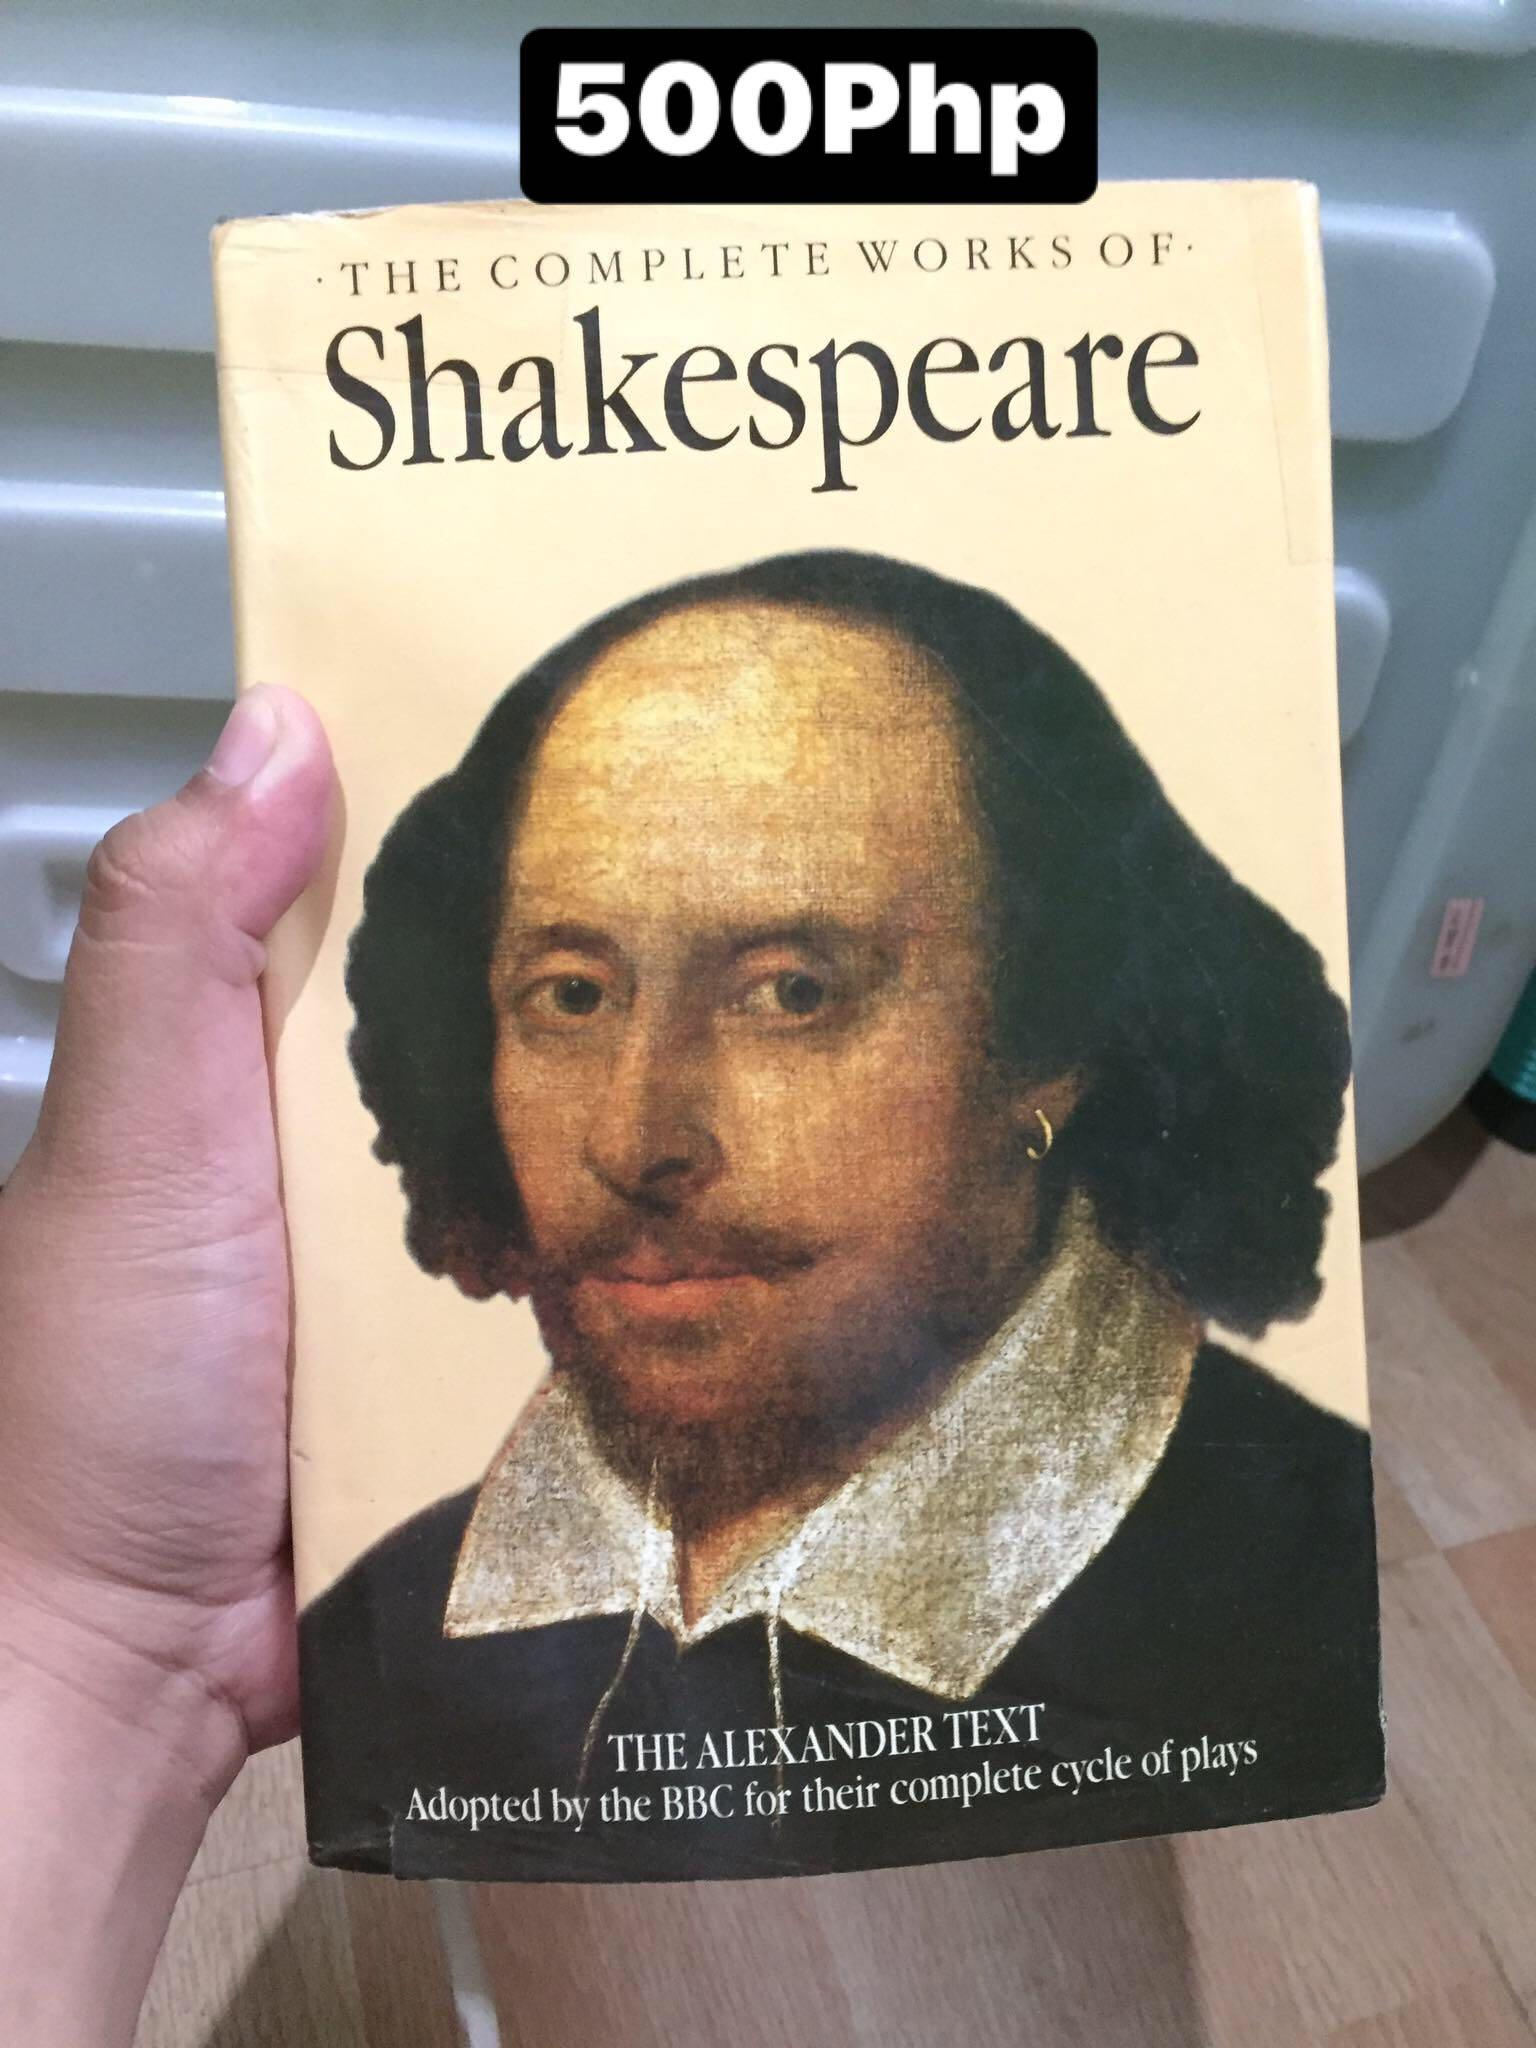 Book: Shakespeare's complete works collection